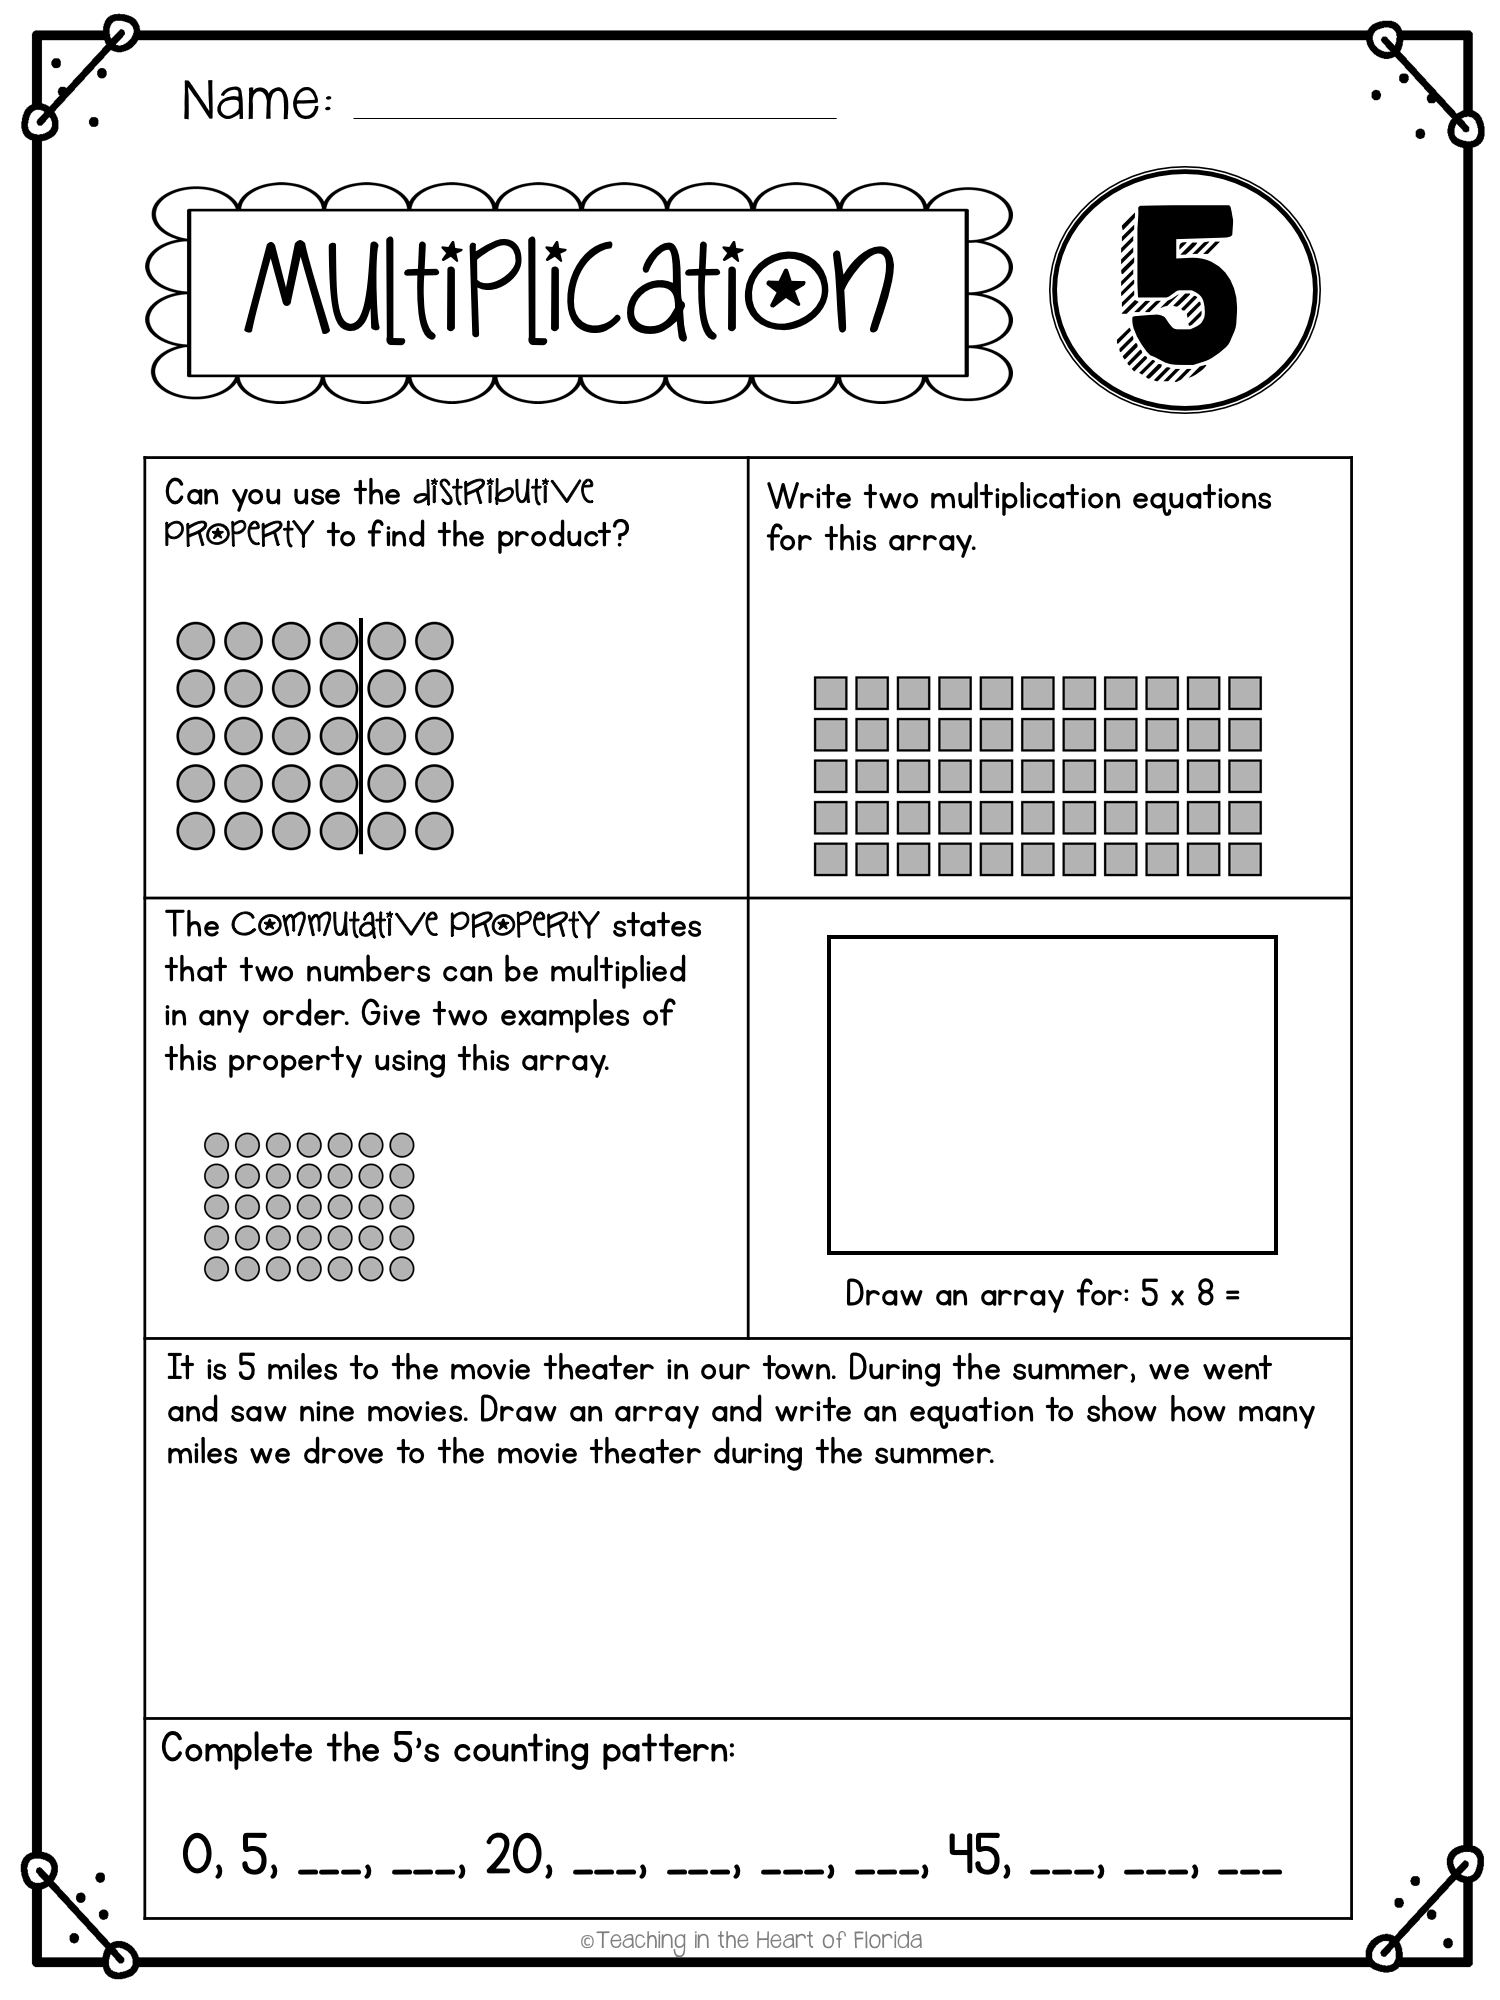 Multiplication Worksheets Multiplication Facts 1 12 In 2020